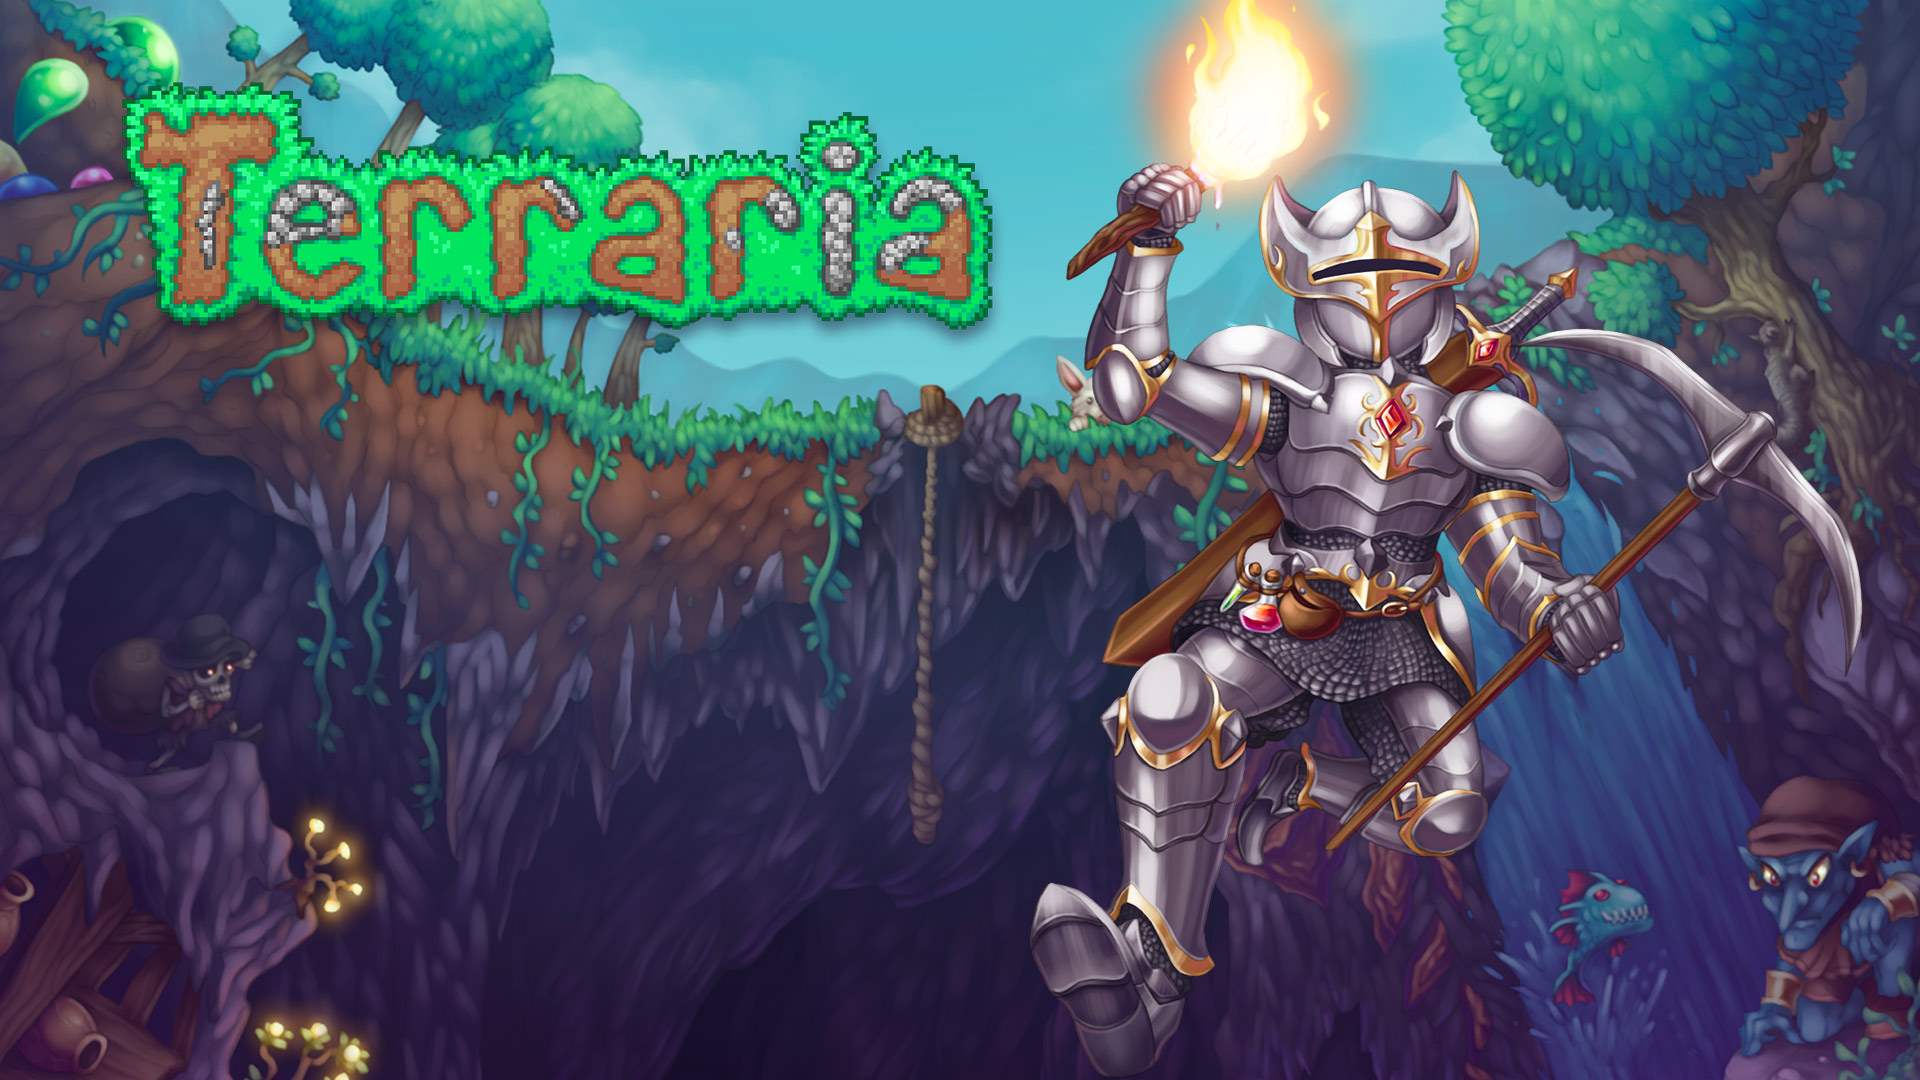 Terraria for Stadia is canceled after the game's developer is locked out of his Google accounts